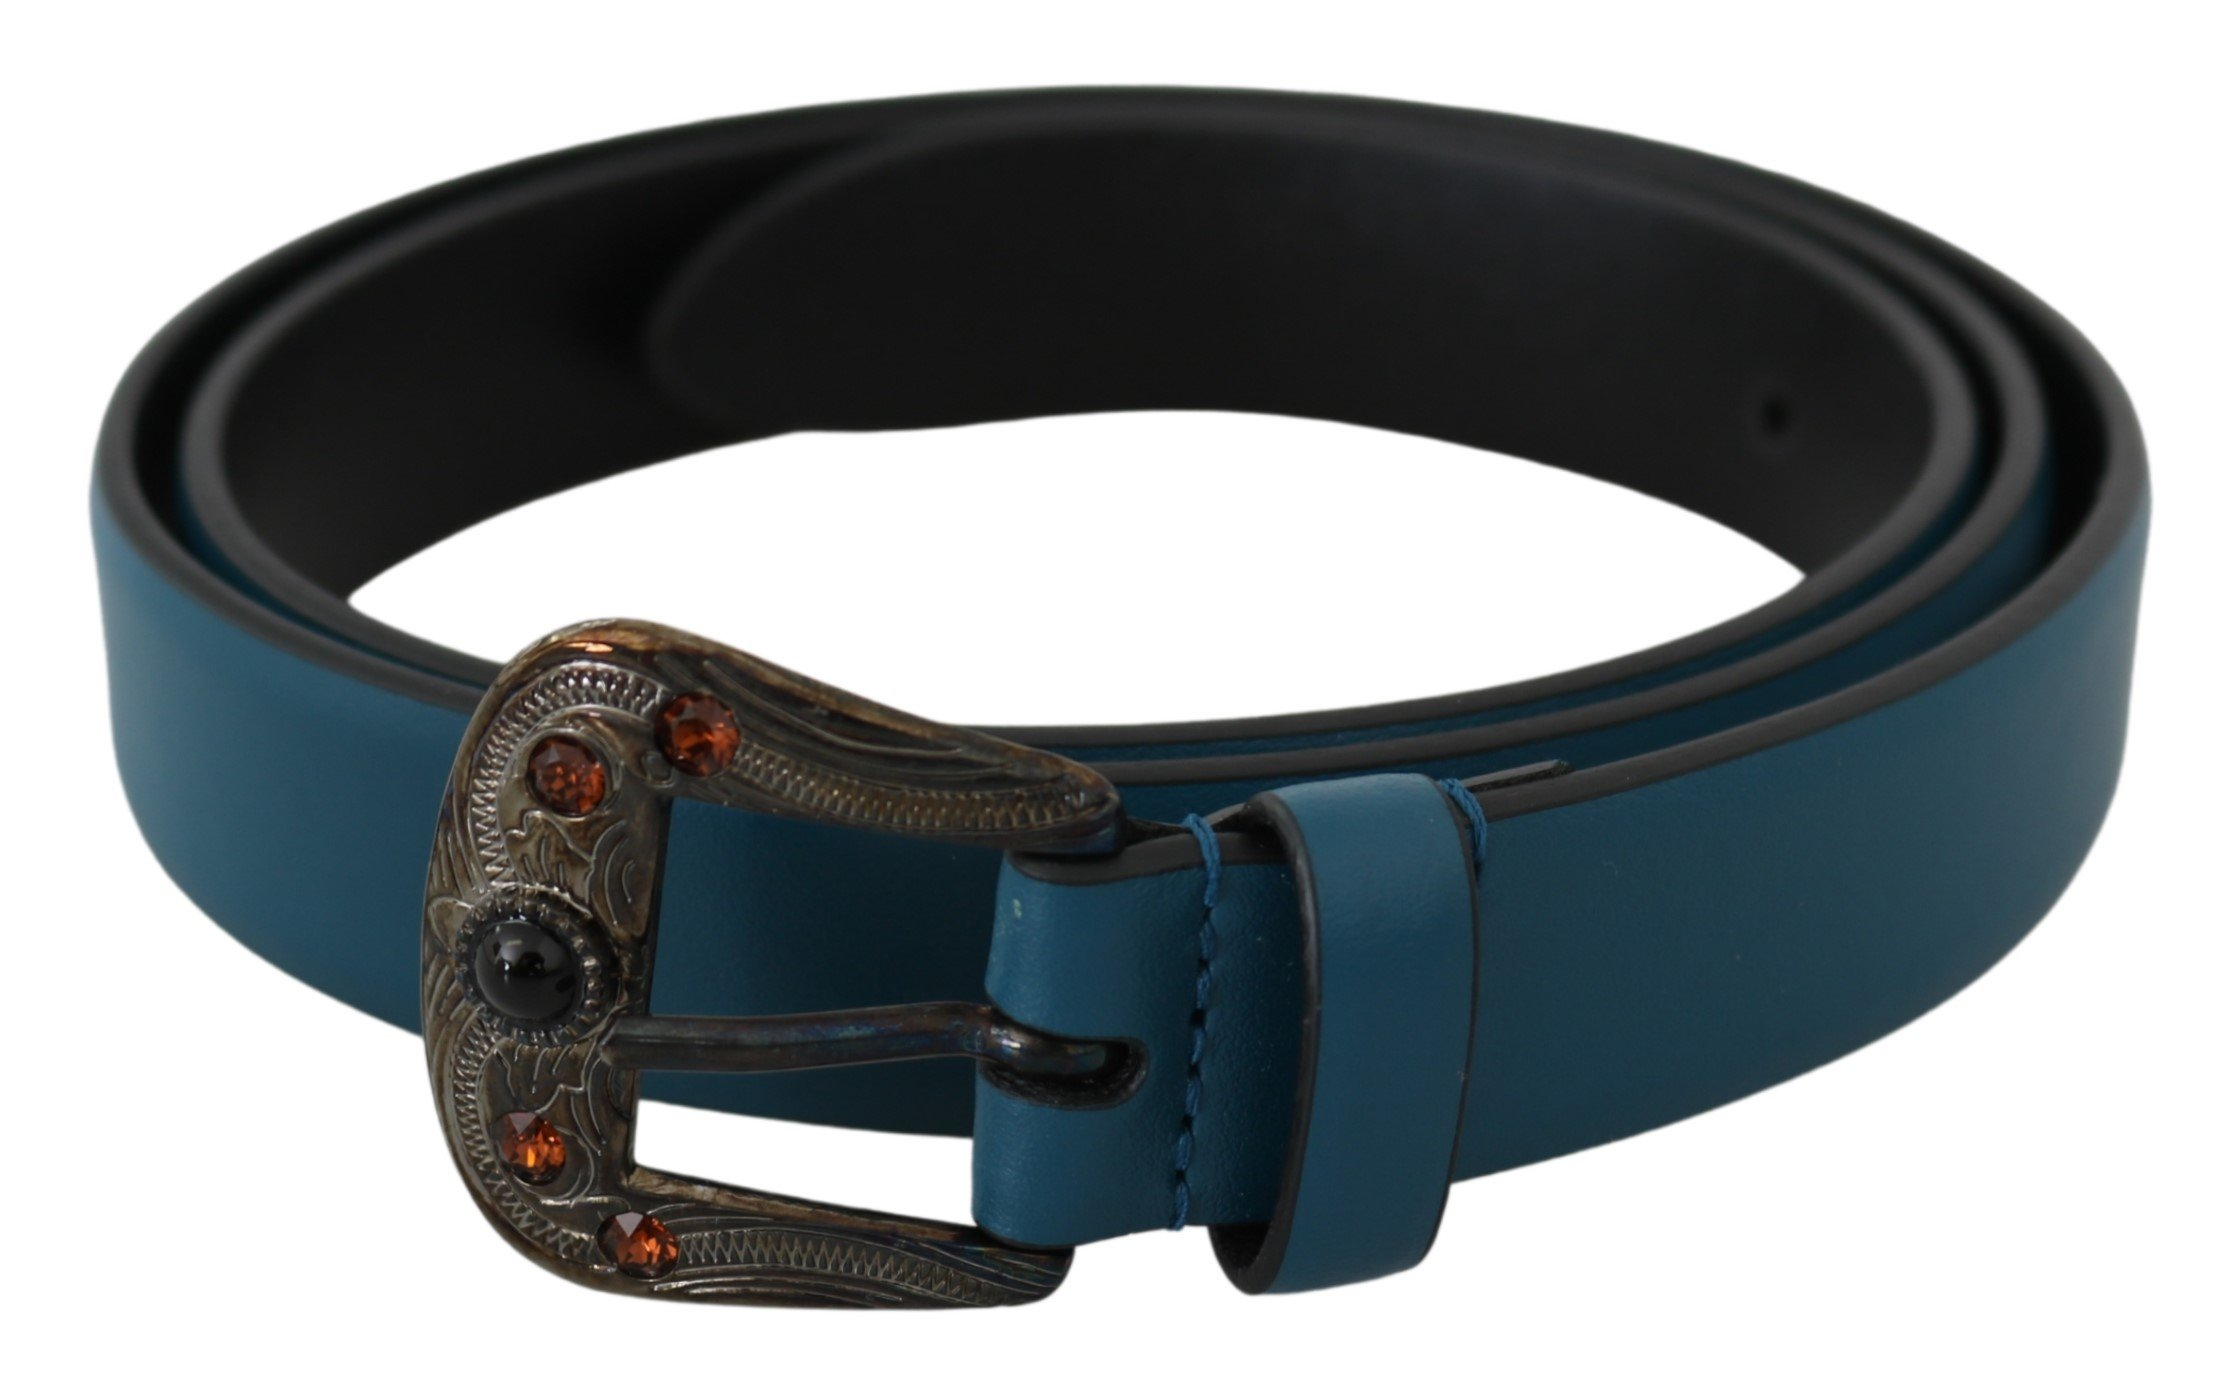 Blue Leather Amber Crystal Baroque Buckle Belt - 90 cm / 36 Inches